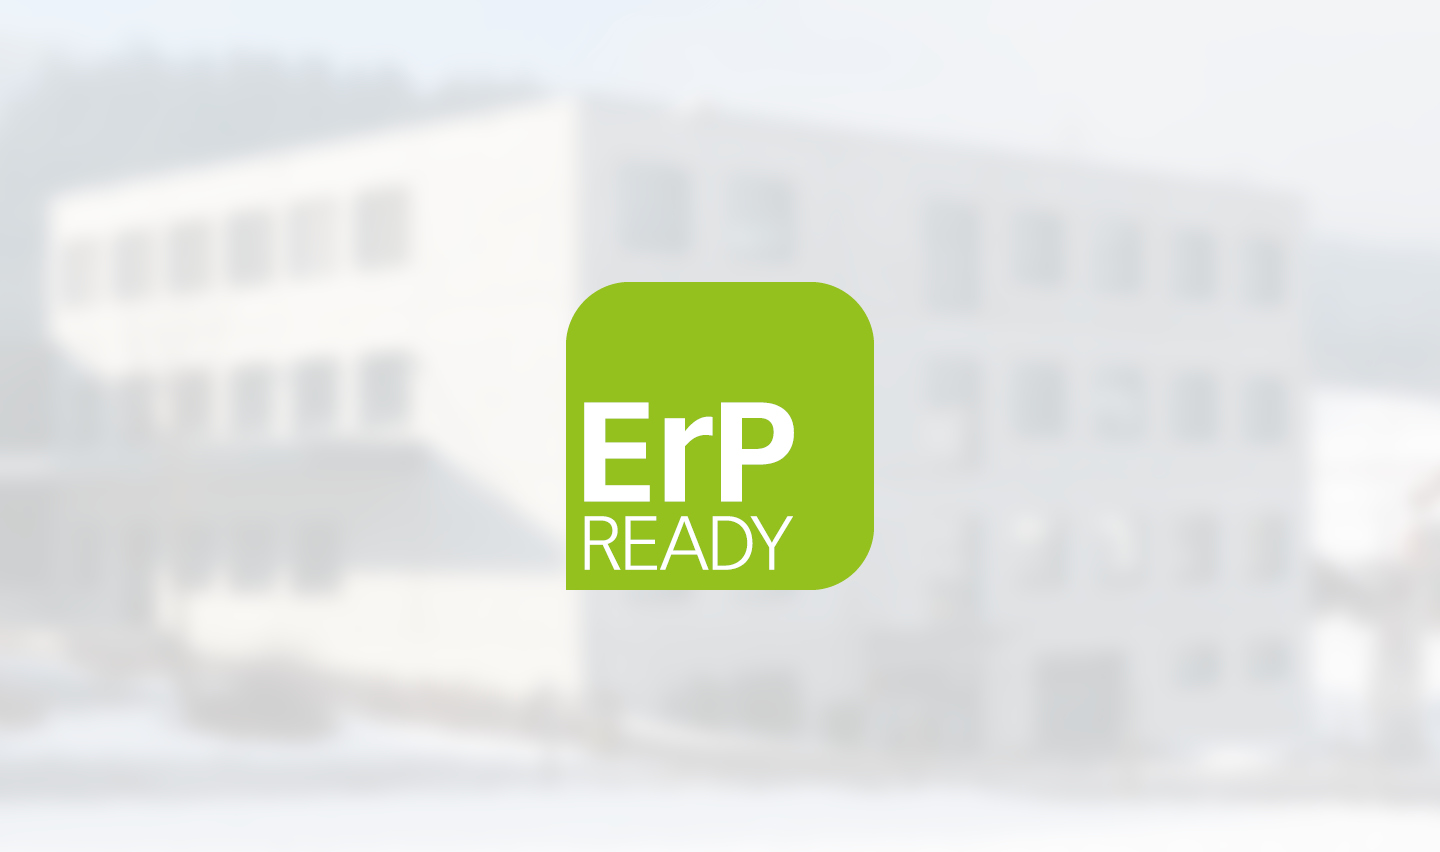 Systec Therm - Ökodesign-Richtlinie (ErP)